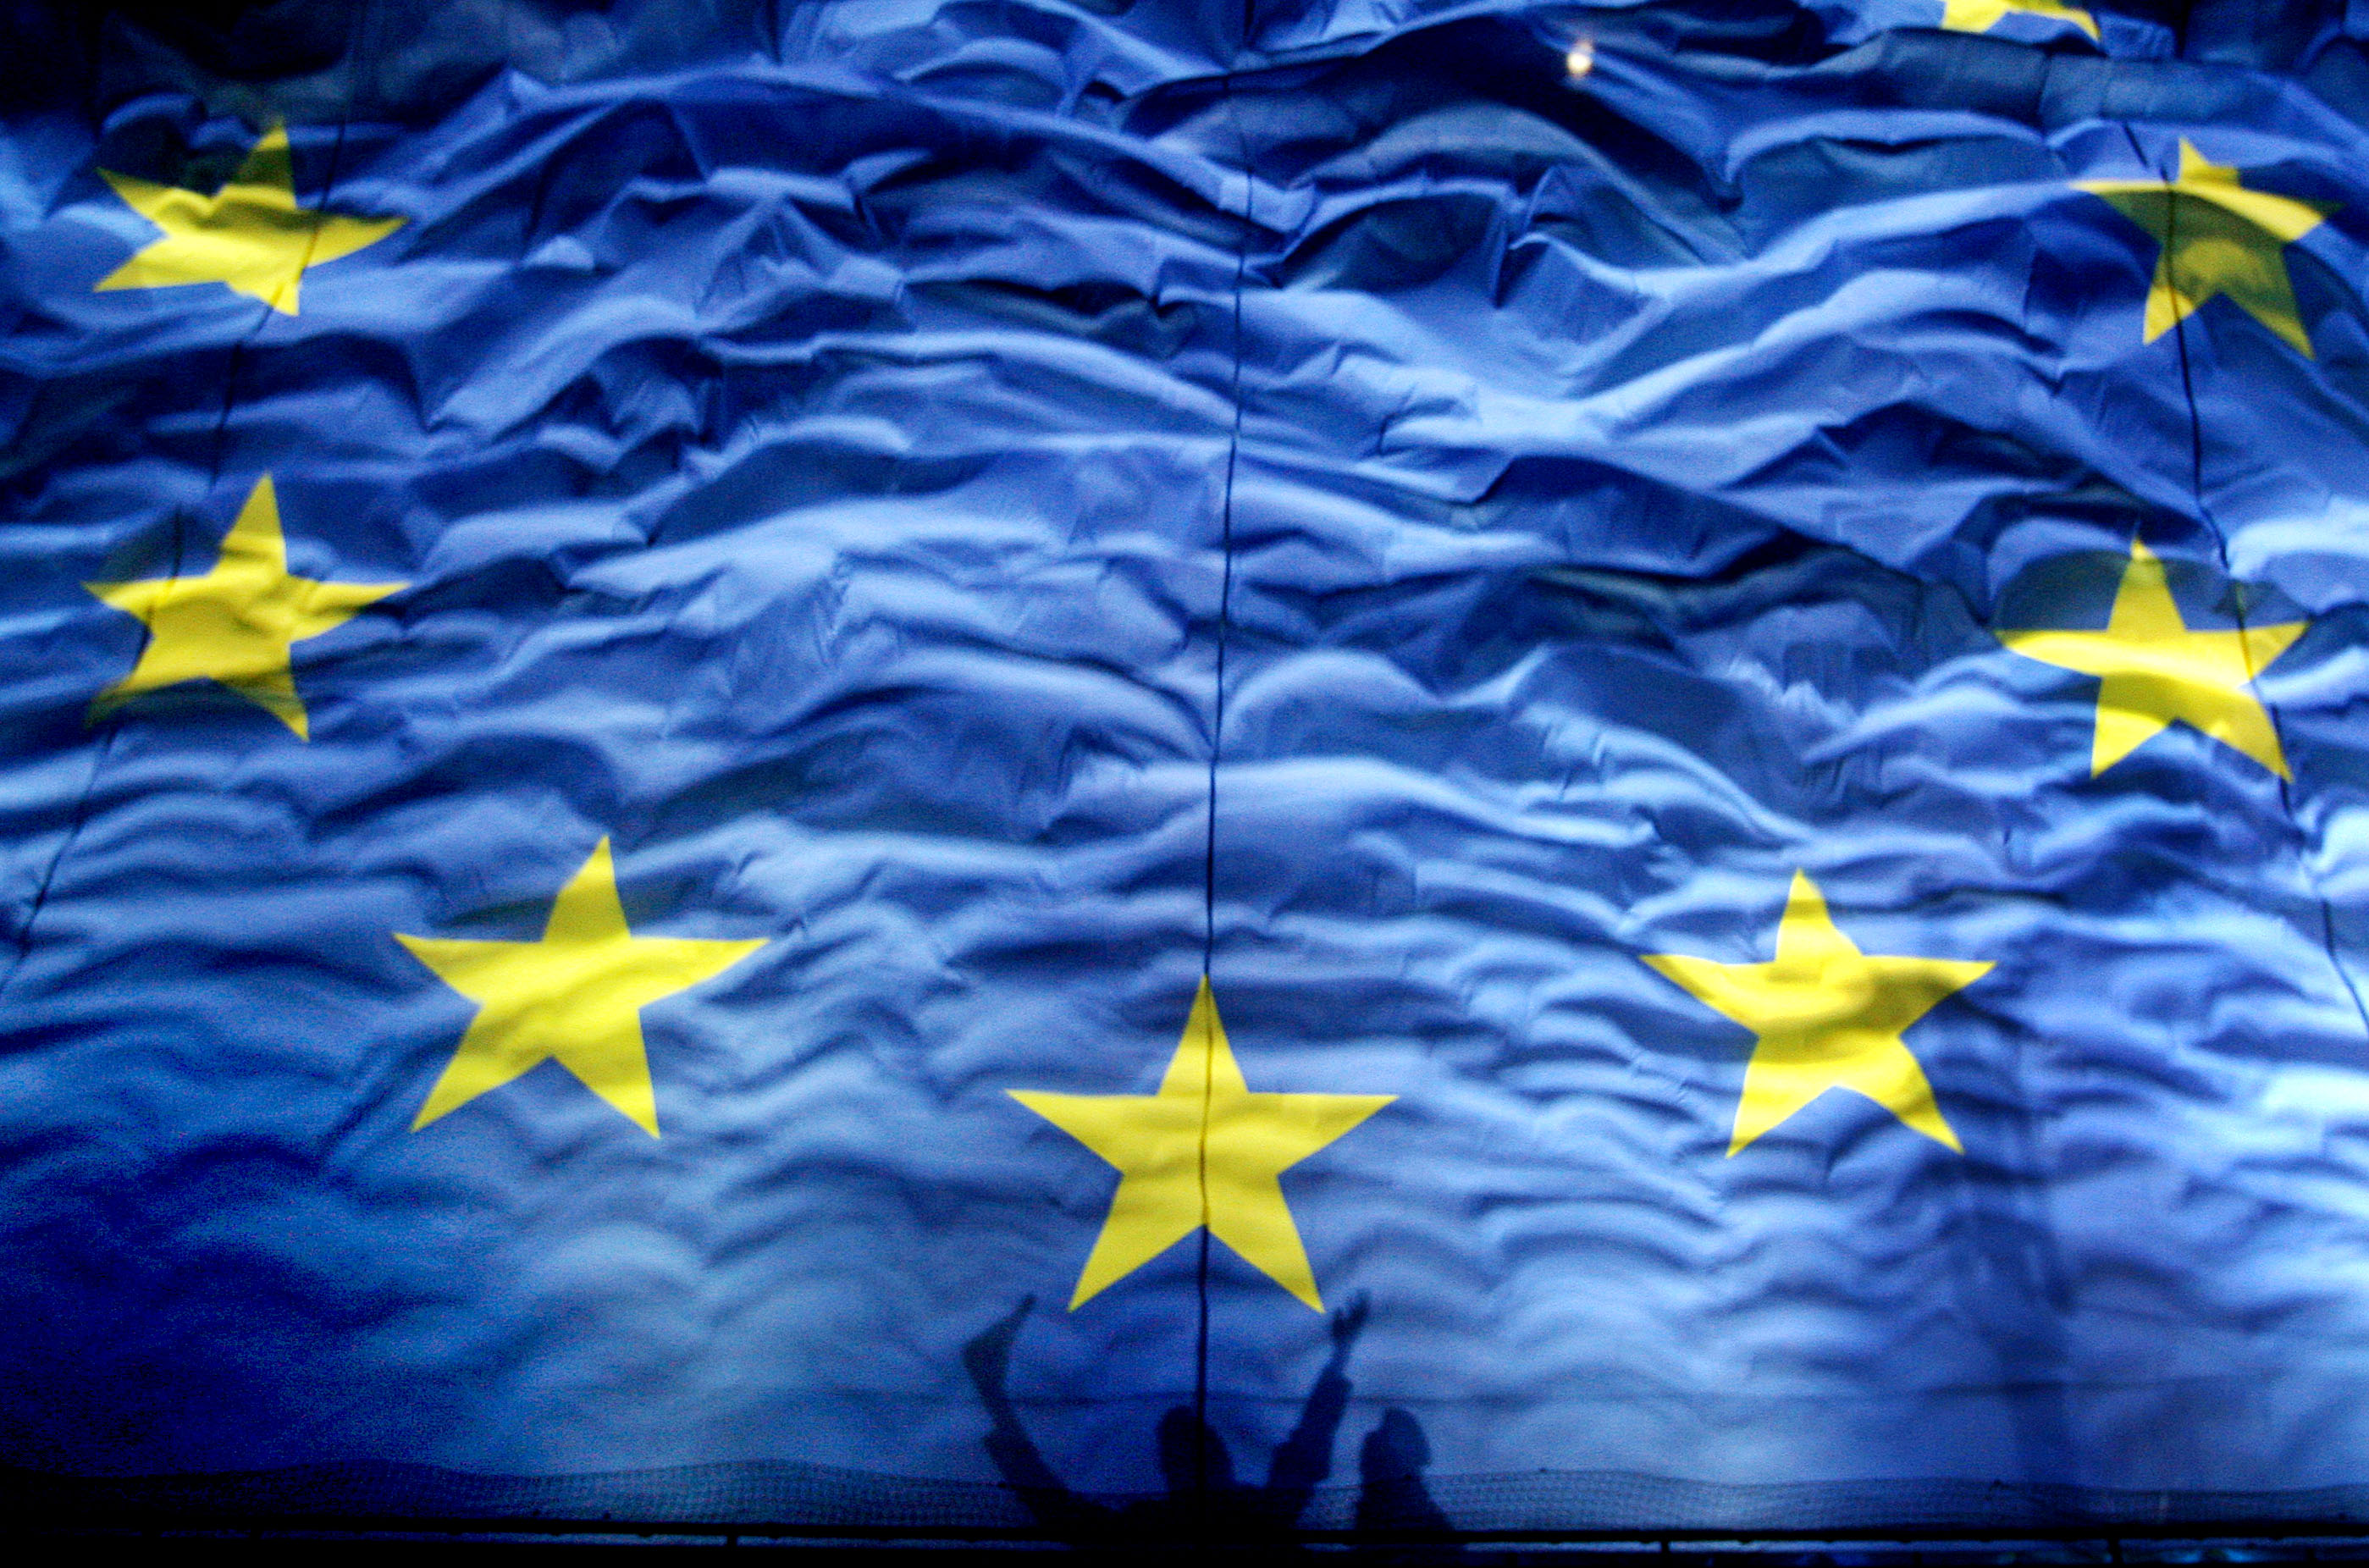 """FILE - In this Monday, Jan. 1, 2012 file photo, cheering Romanians cast shadows on a giant European Union  flag during new year celebrations for Romania's accesion in the EU in Bucharest Romania. The European Union has been awarded the Nobel Peace Prize for its efforts to promote peace and democracy in Europe, in the midst of the union's biggest crisis since its creation in the 1950s. The Norwegian prize committee said the EU received the award for six decades of contributions """"to the advancement of peace and reconciliation, democracy and human rights in Europe. (AP Photo/Vadim Ghirda, File)"""